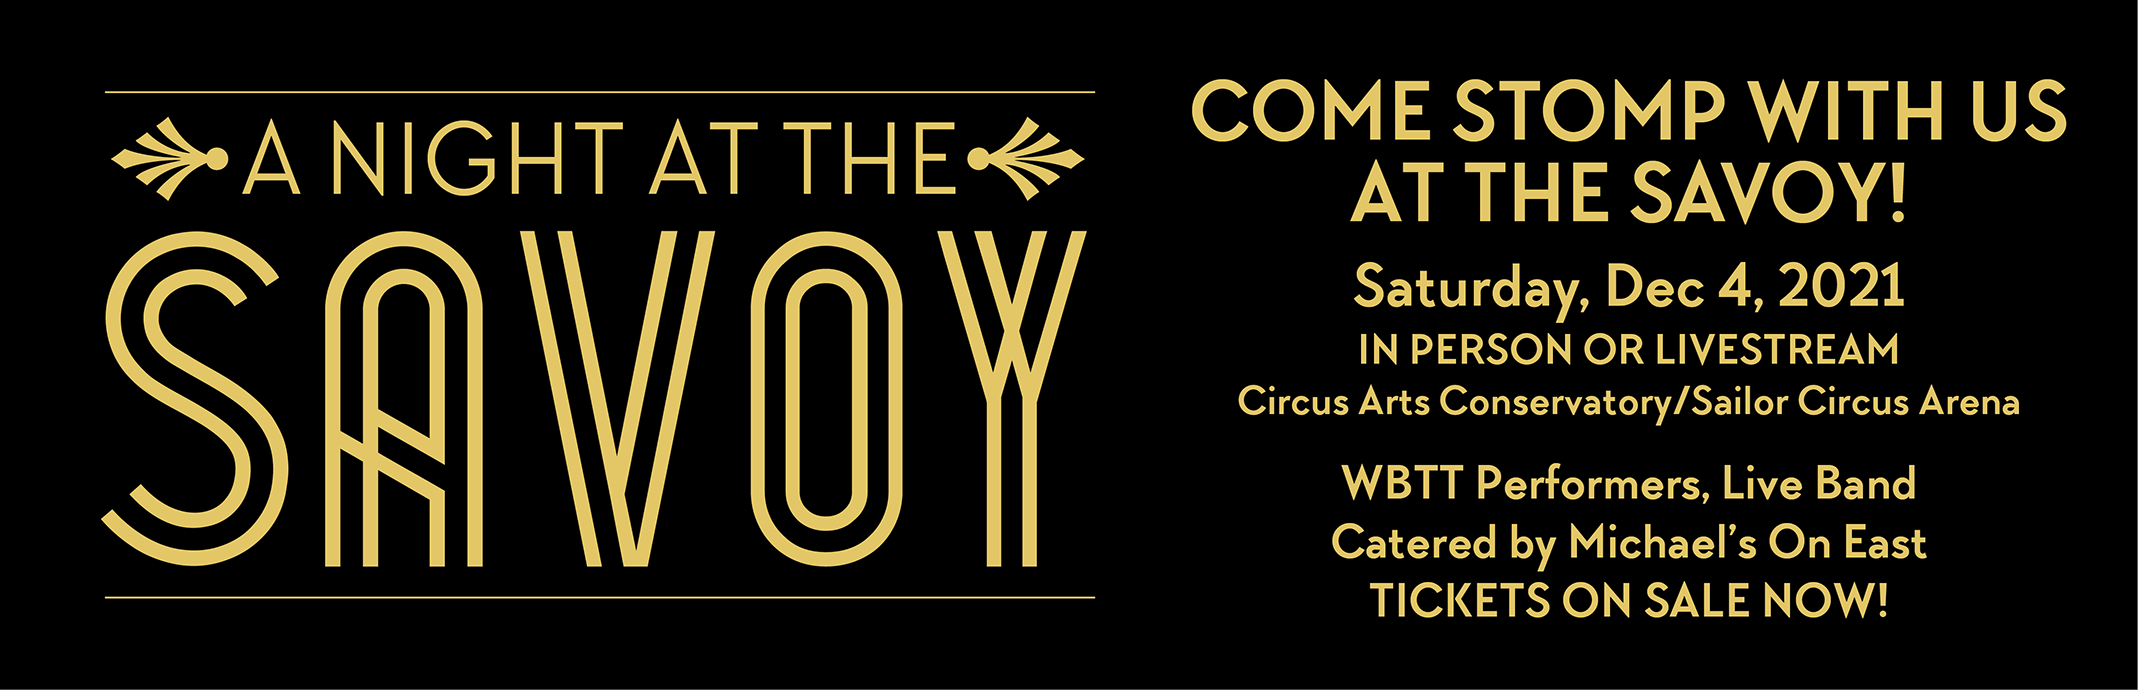 A Night at the Savoy! Saturday, Dec 4, 2021. Tickets on Sale Now!